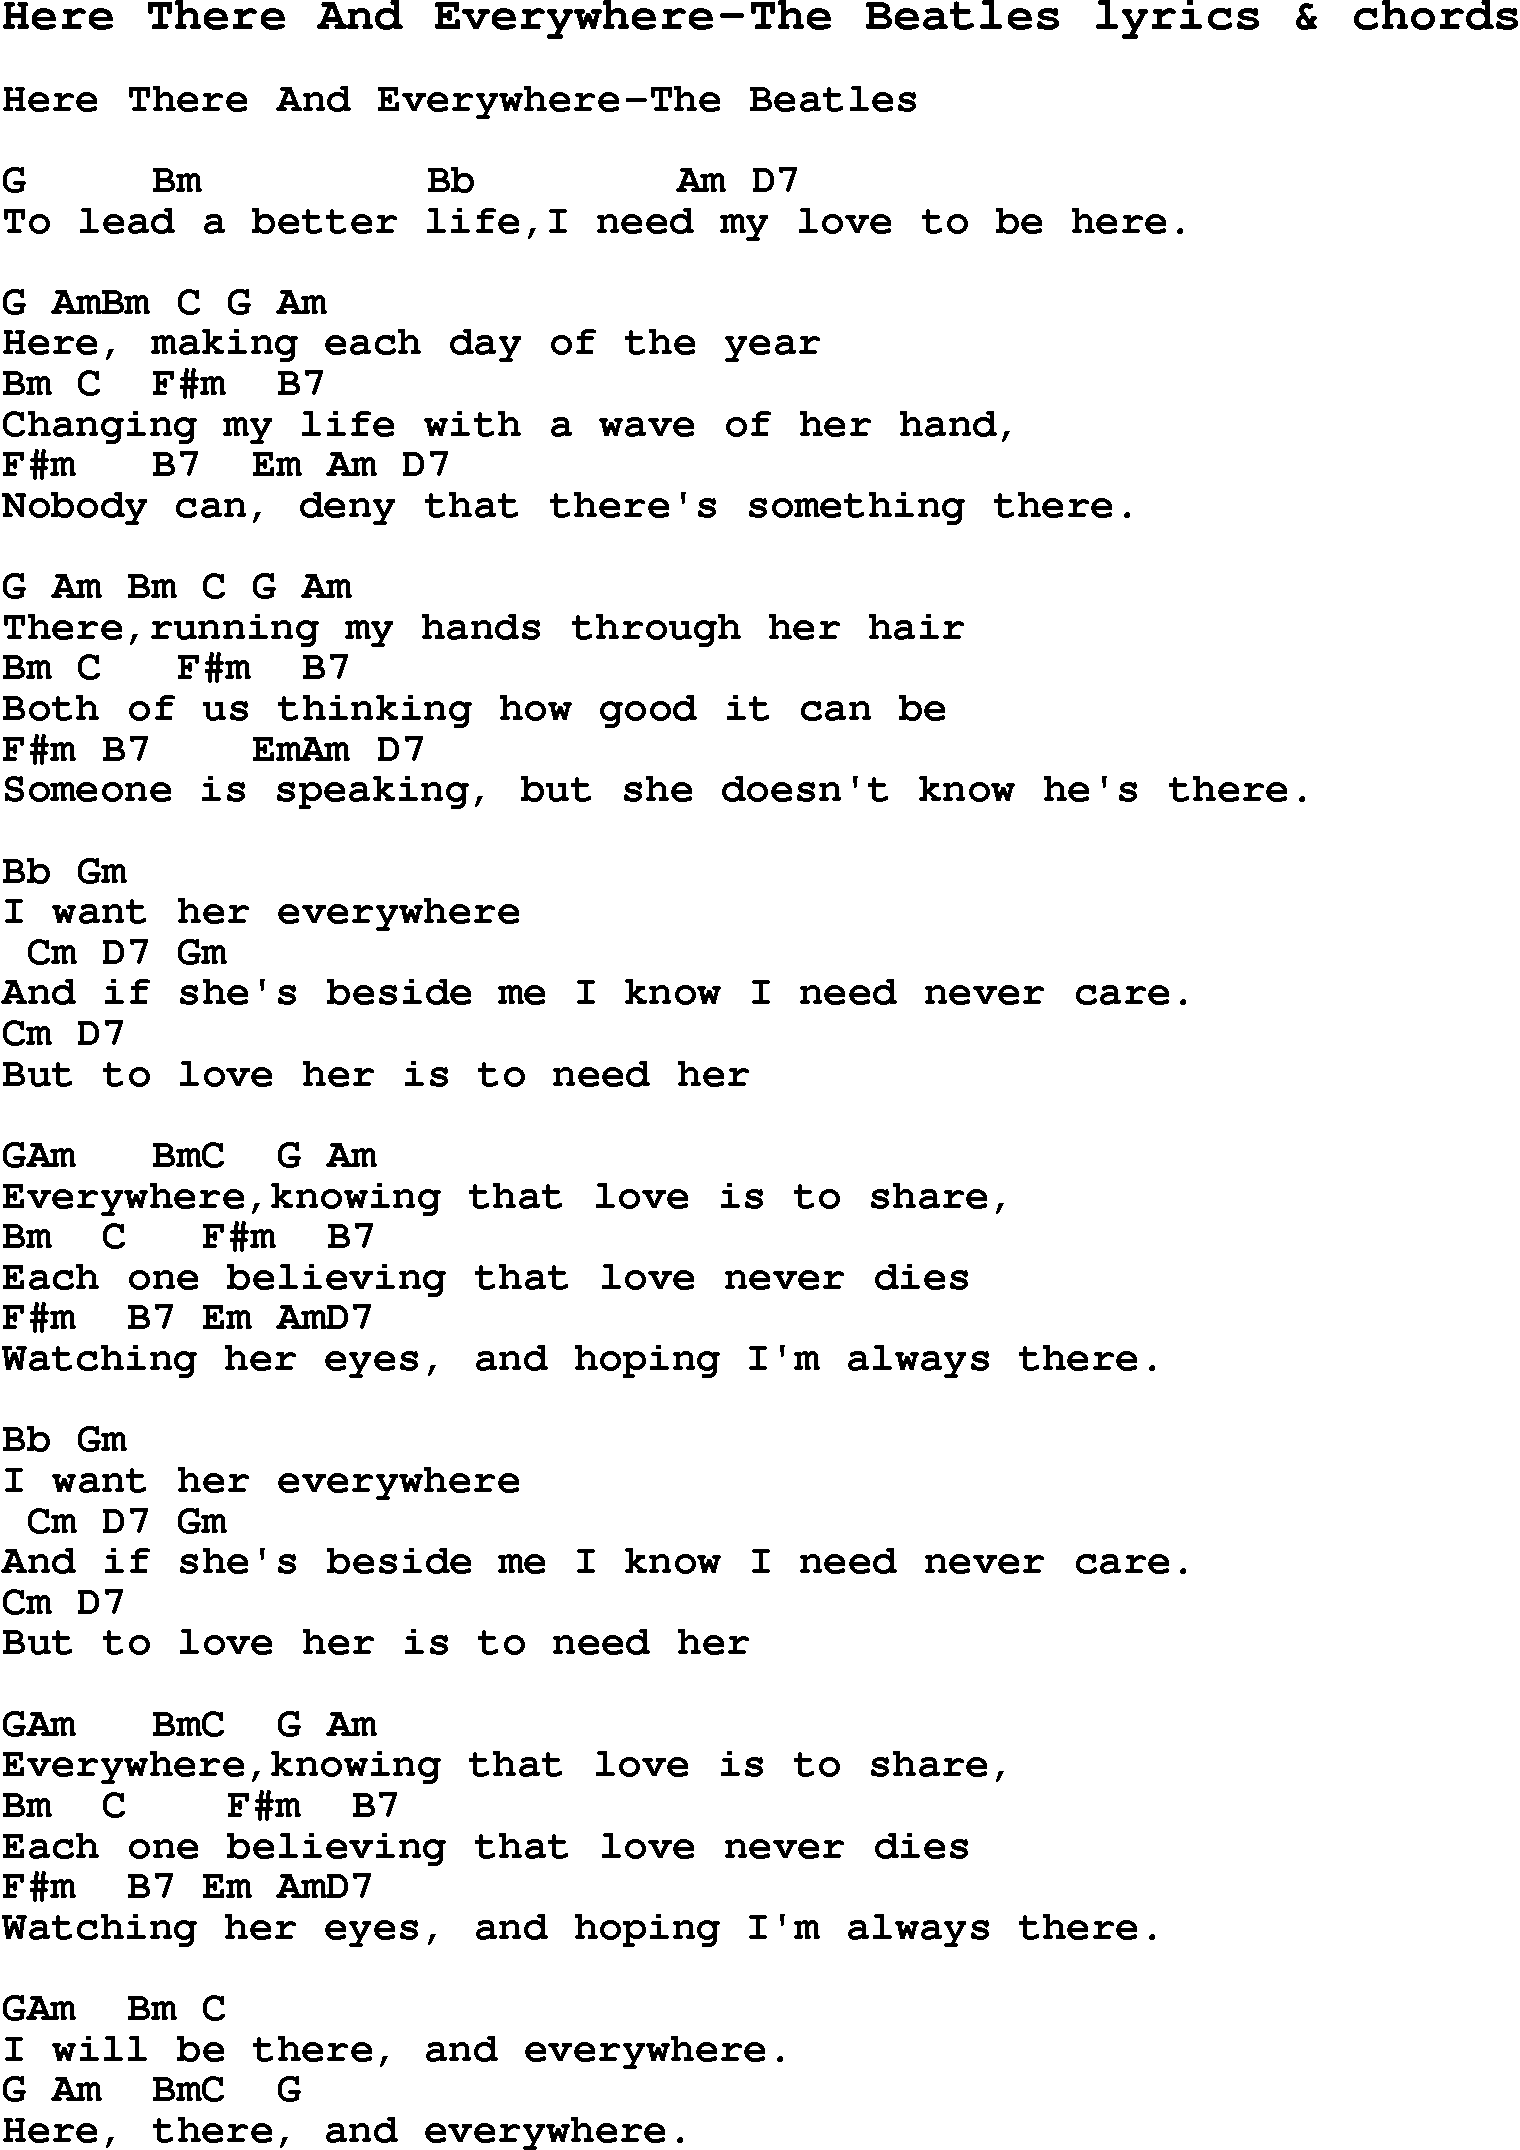 Love Song Lyrics For Here There And Everywhere The Beatles With